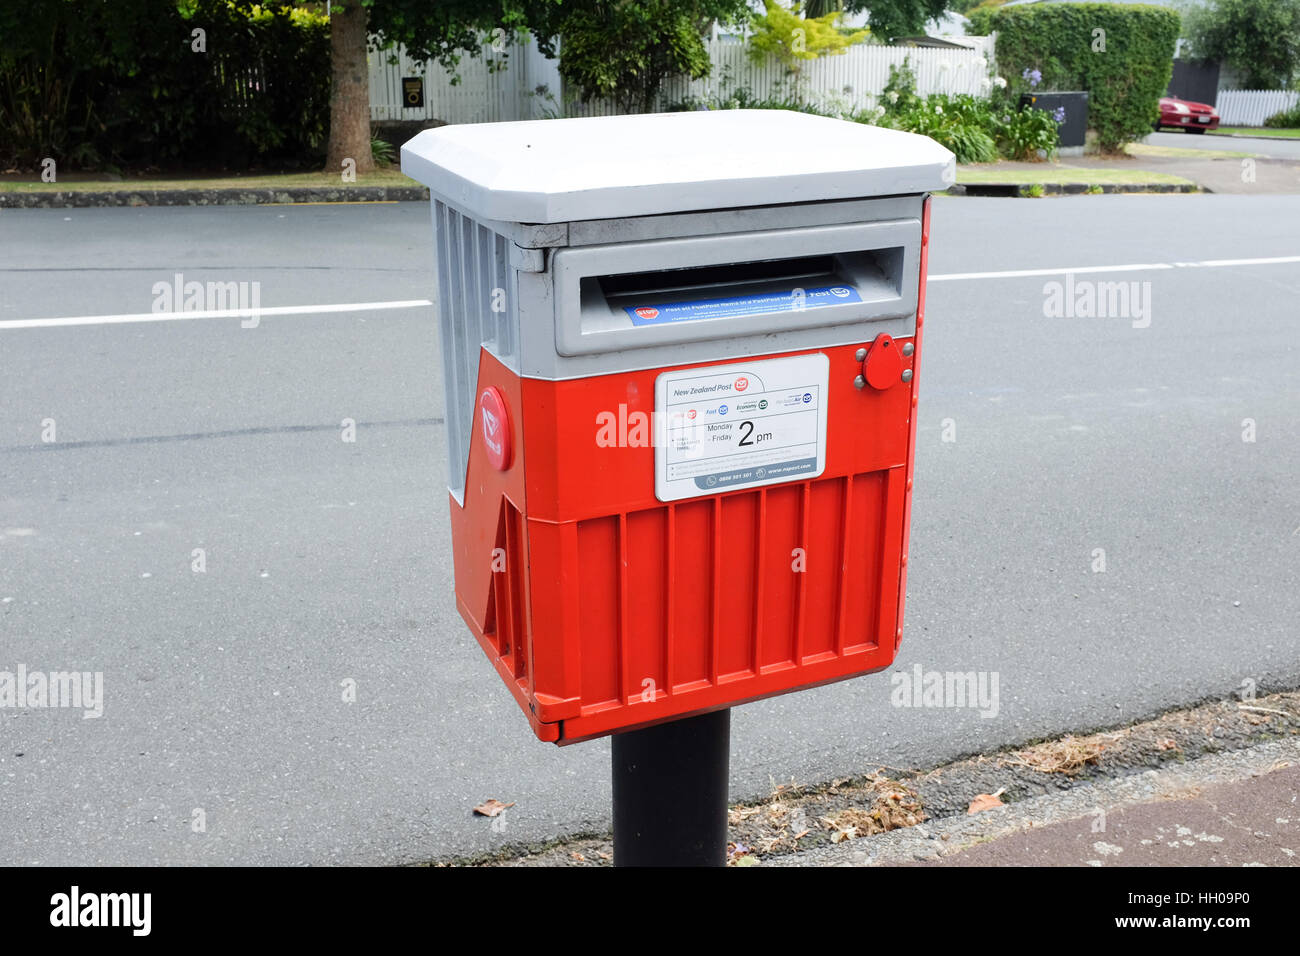 A post box in New Zealand. - Stock Image